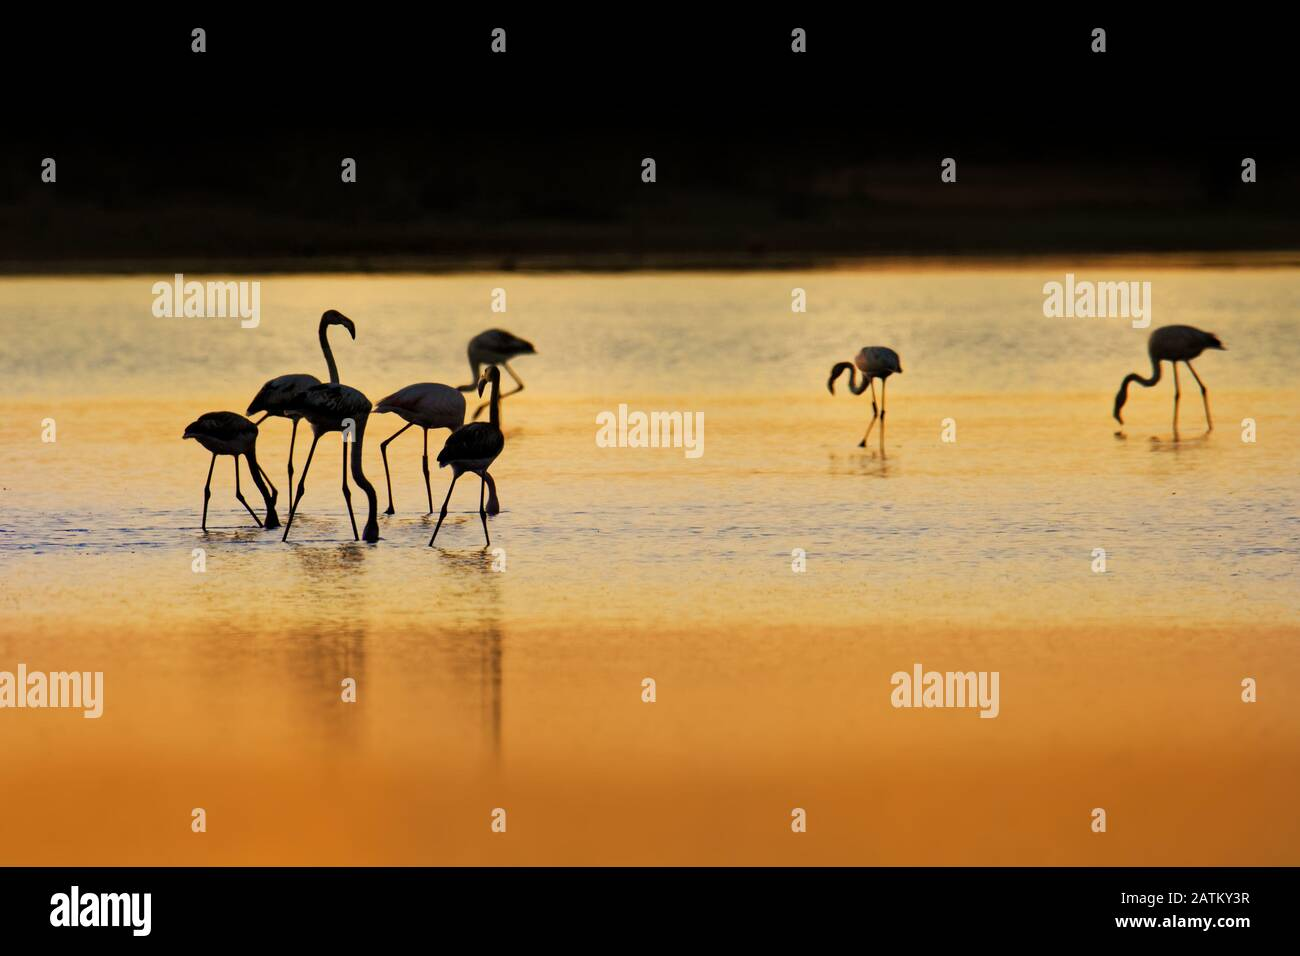 Greater Flamingo - Phoenicopterus roseus the most widespread and largest species of flamingo family, found in Africa, India, Middle East and southern Stock Photo